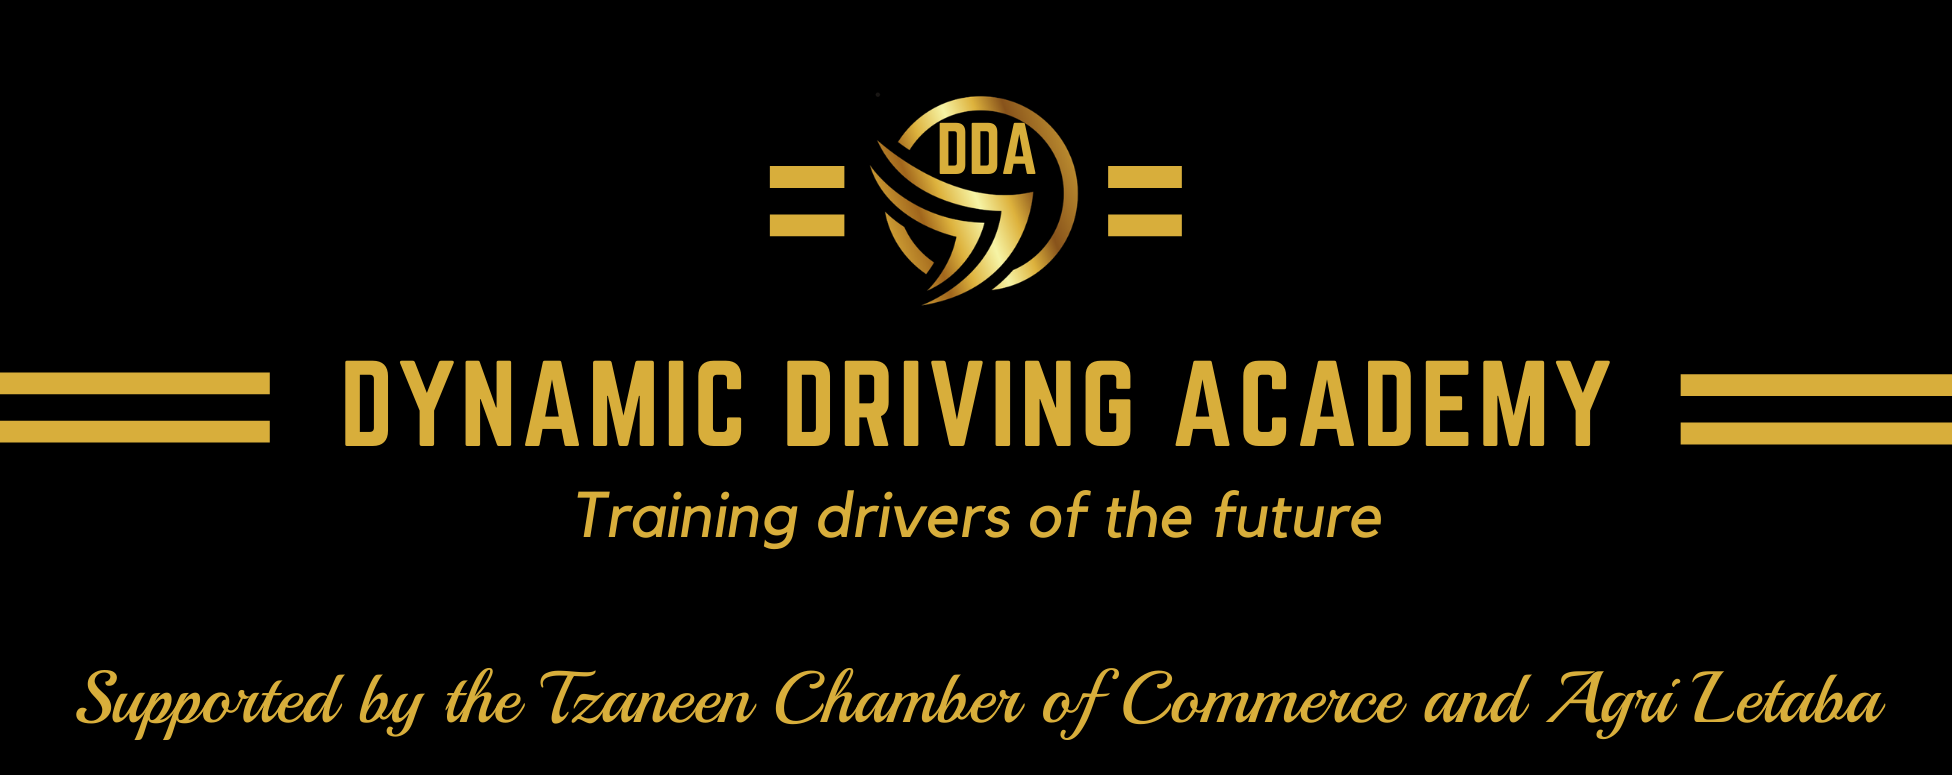 Dynamic Driving Academy. Training drivers of the future. A driving school supported by The Tzaneen Chamber of Commerce and Agri Letaba.